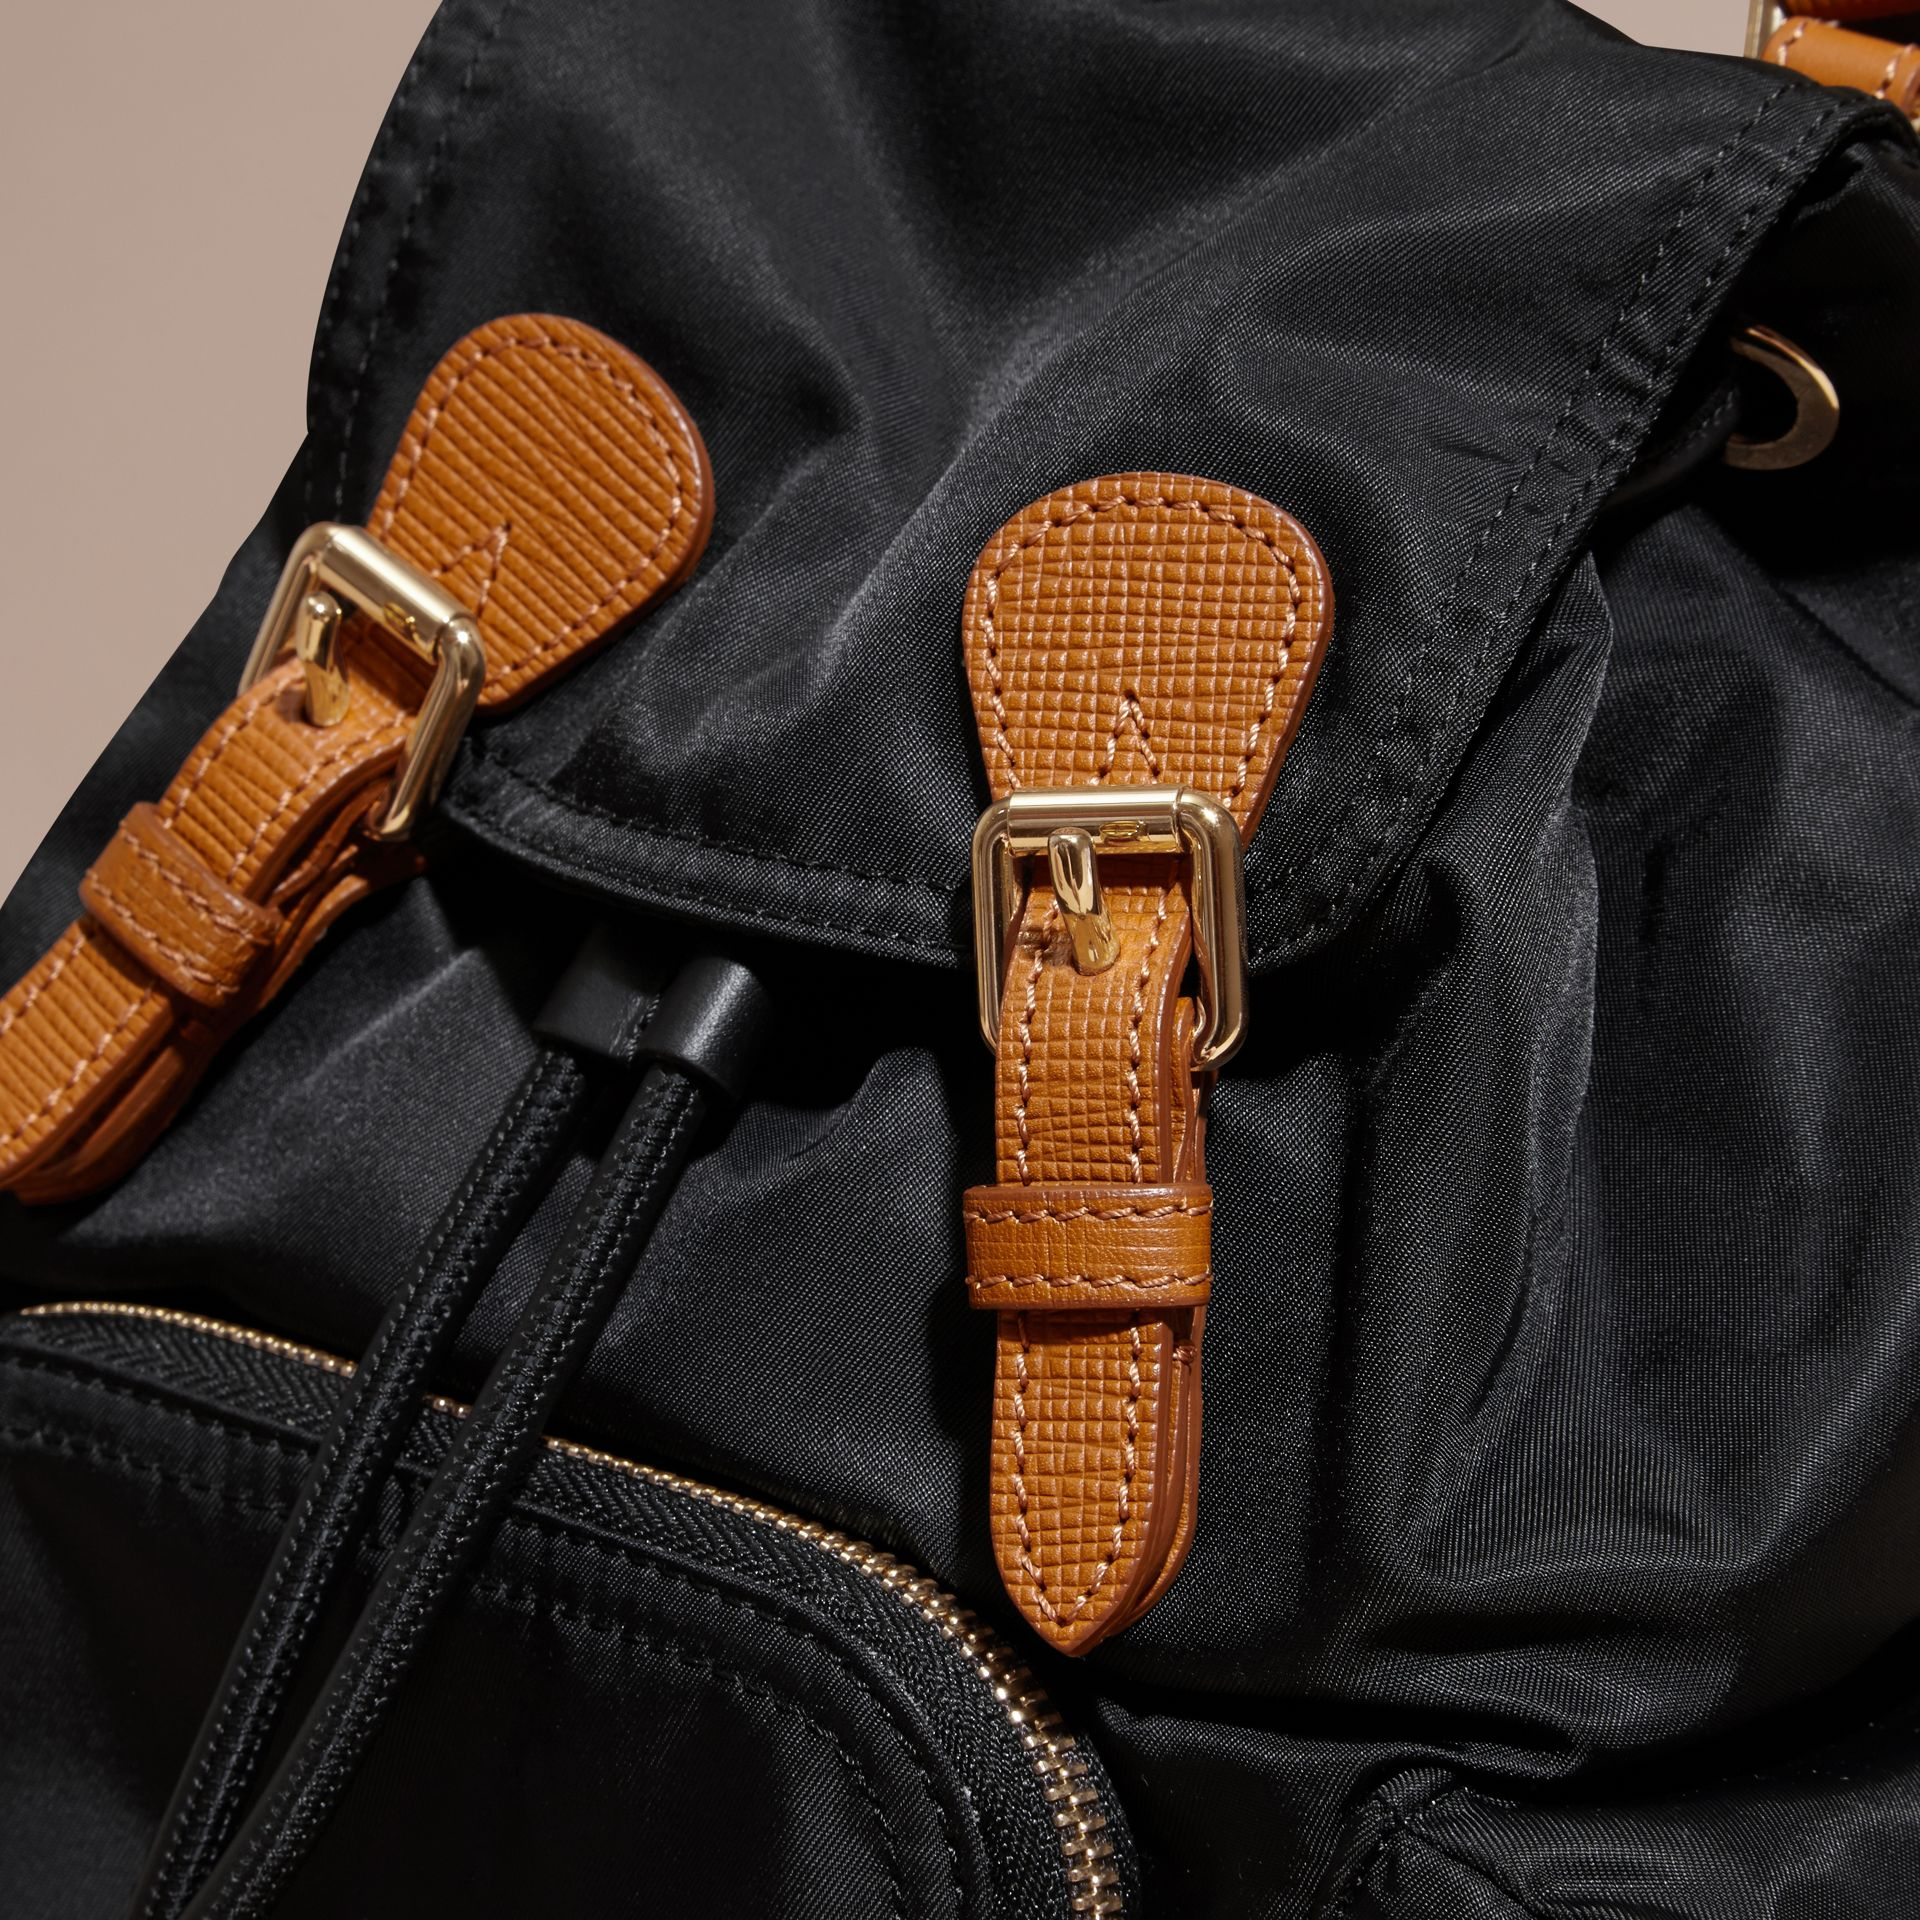 Noir Petit sac The Rucksack en nylon technique et cuir Noir - photo de la galerie 2